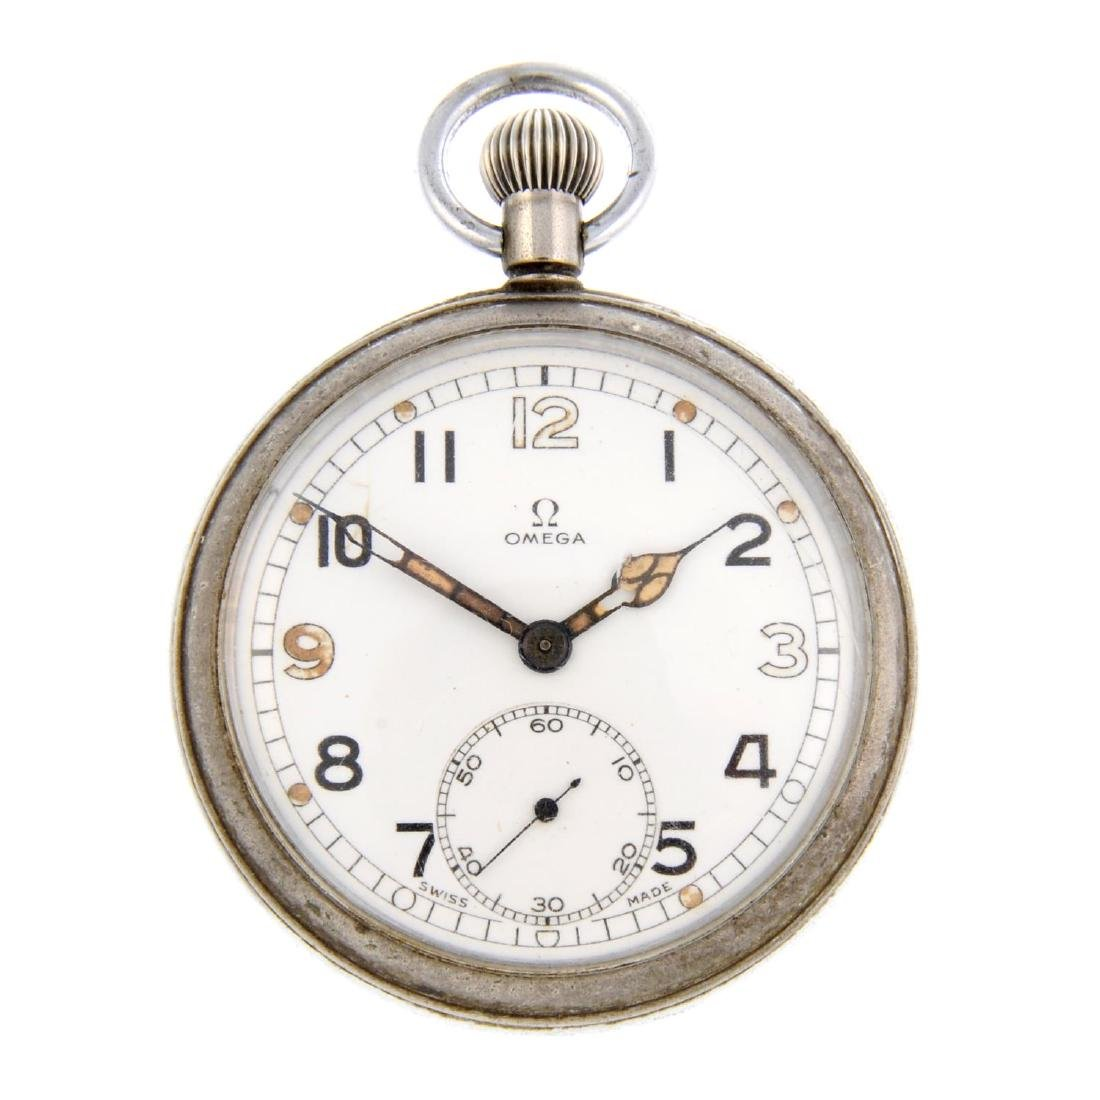 An open face military issue pocket watch by Omega.